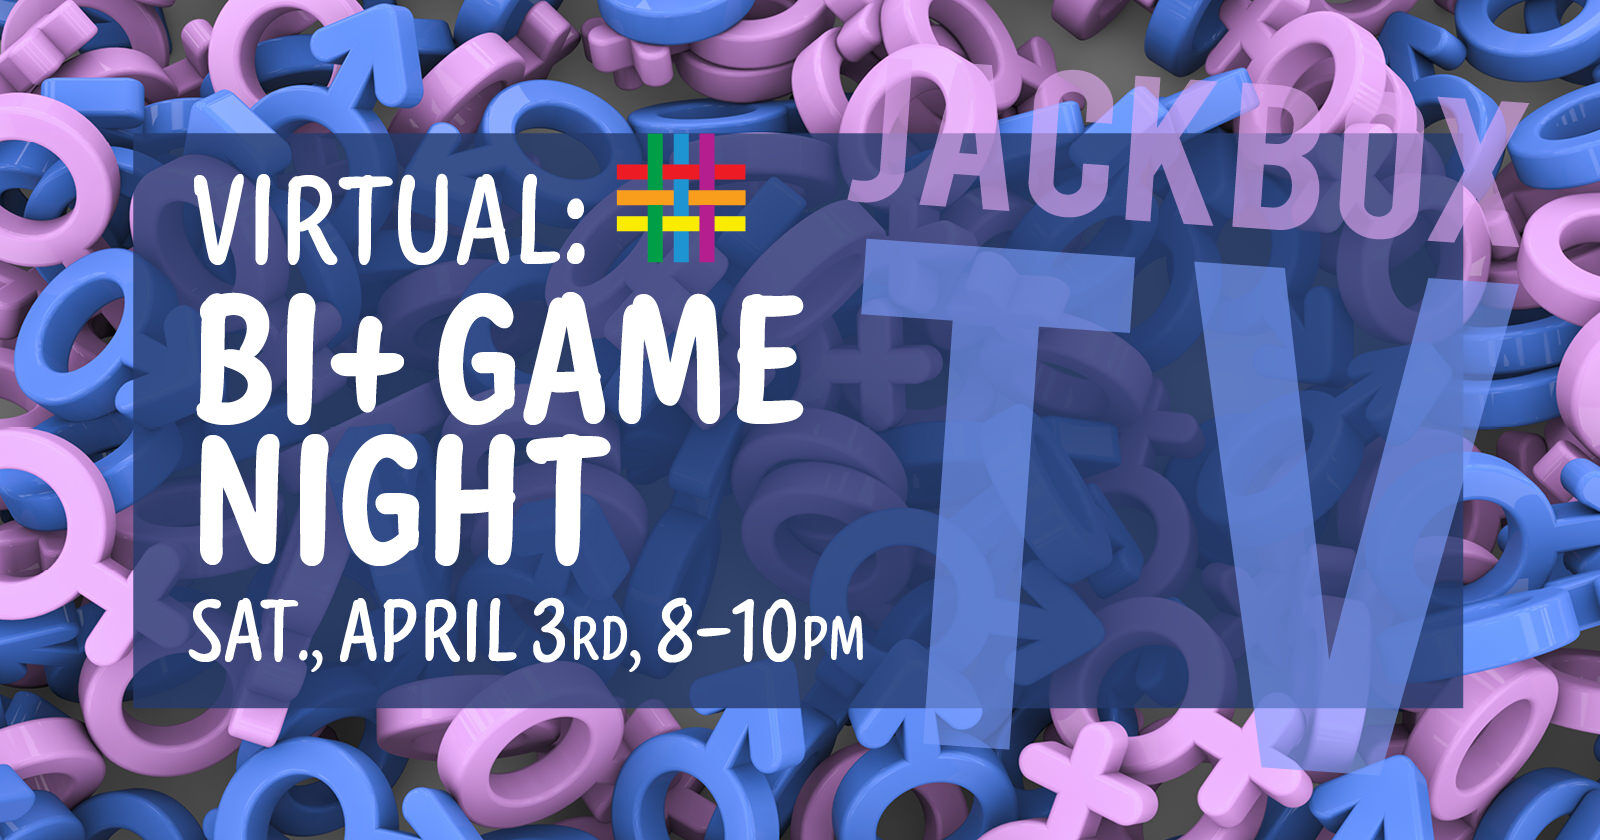 Bi+ Game Night at Brooklyn Community Pride Center